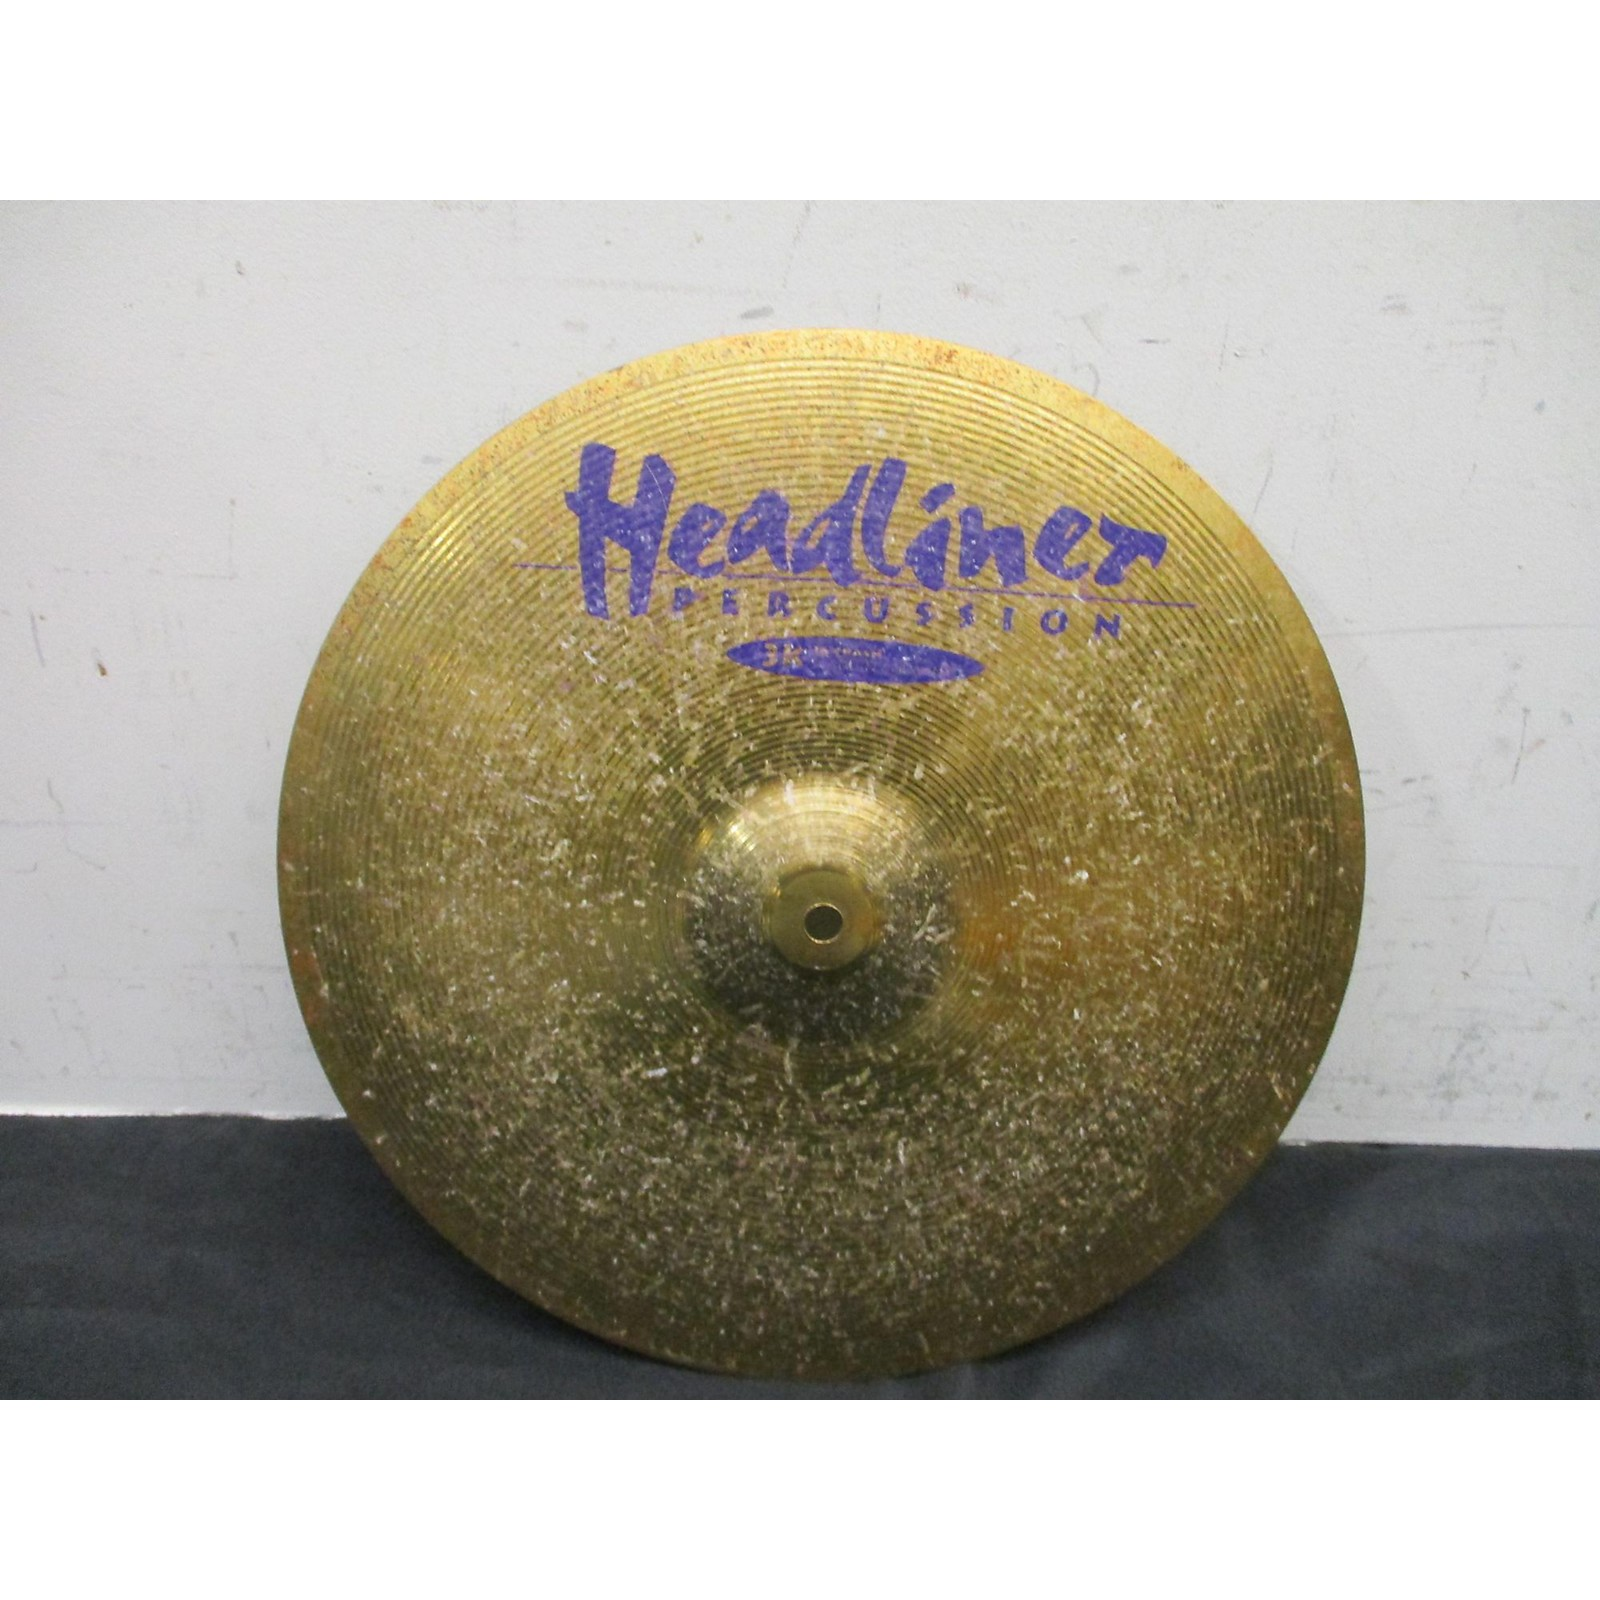 In Store Used Used HEADLINER PERCUSSION 16in 3K CRASH Cymbal